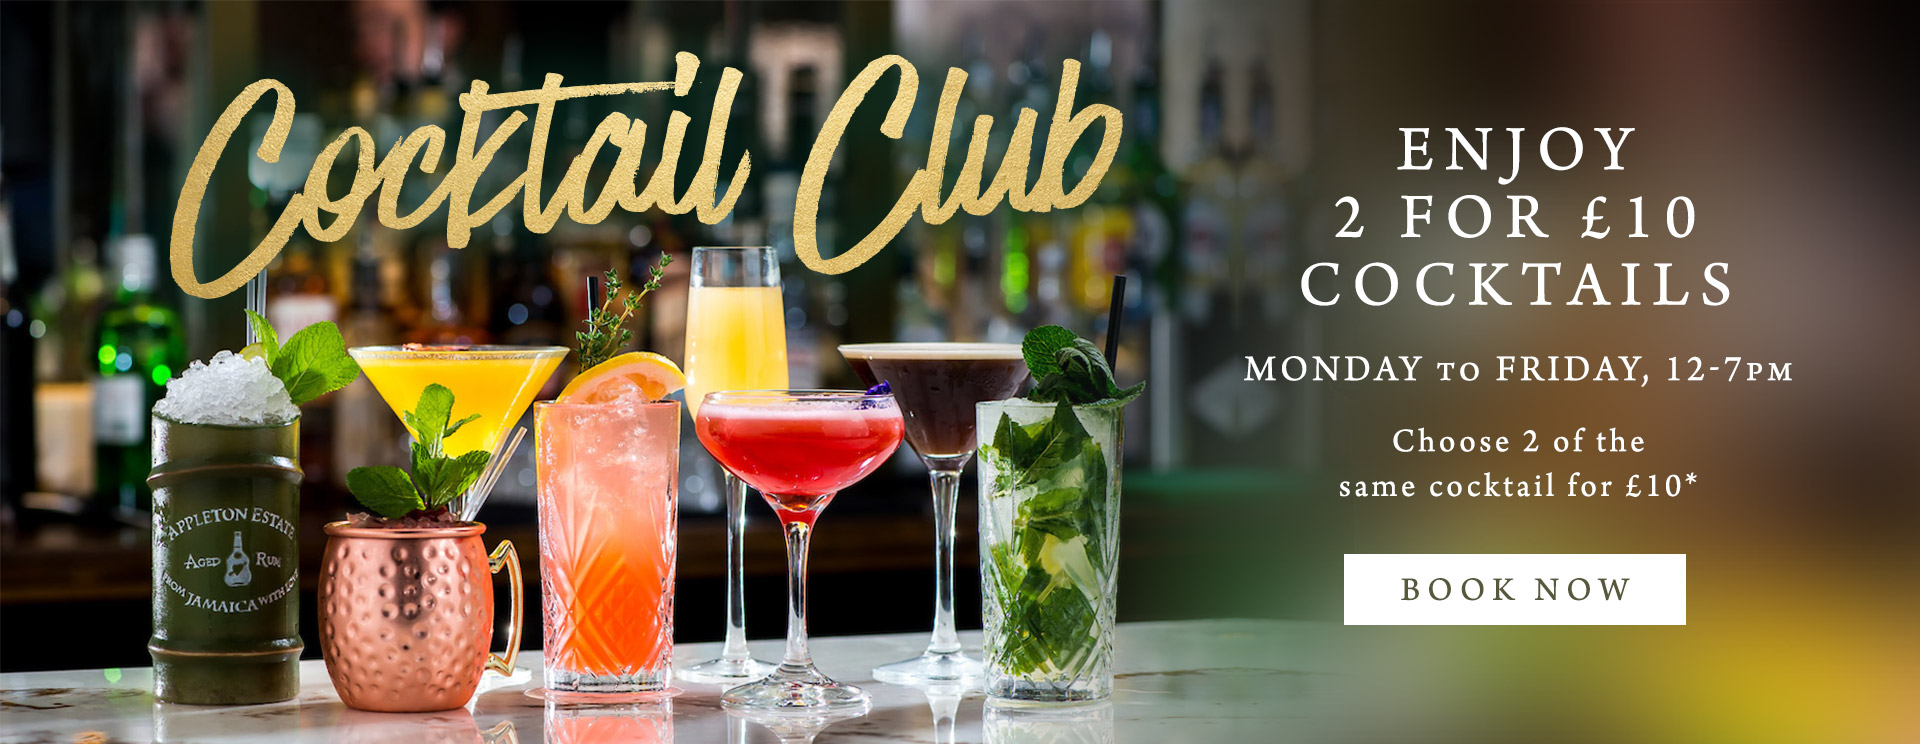 2 for £10 cocktails at The Freemasons Arms